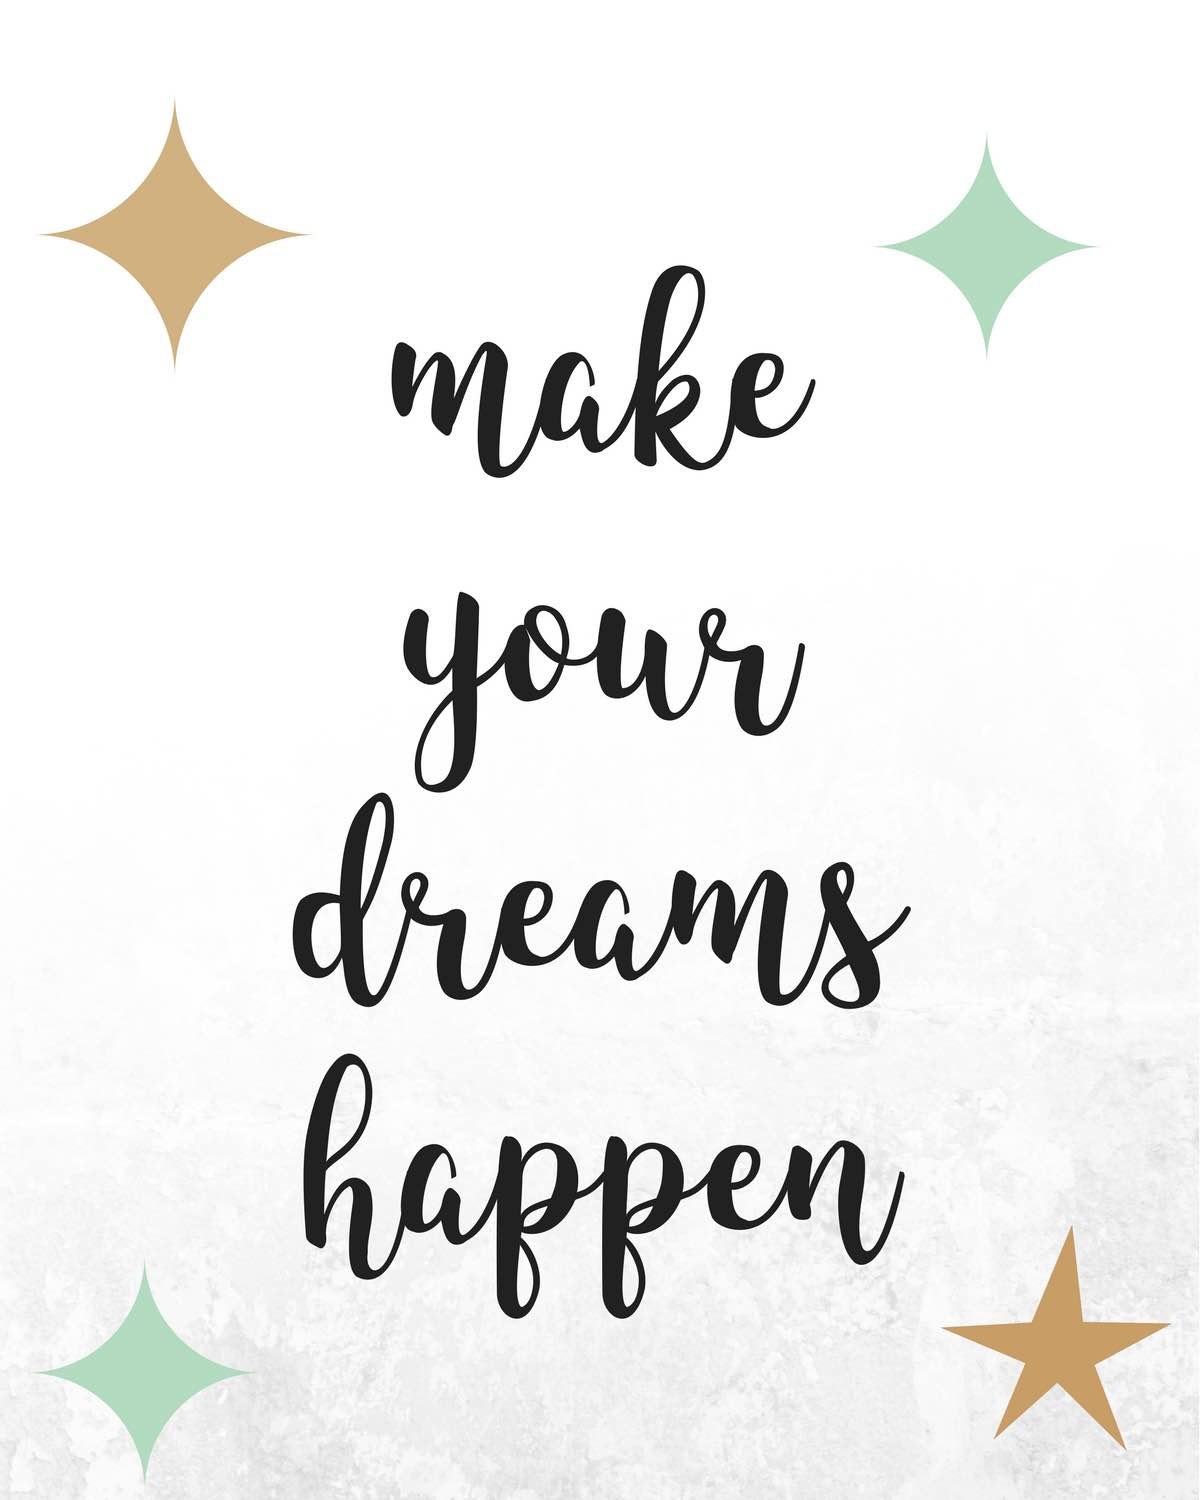 making your dreams happen is a beautiful thing! You go girl!